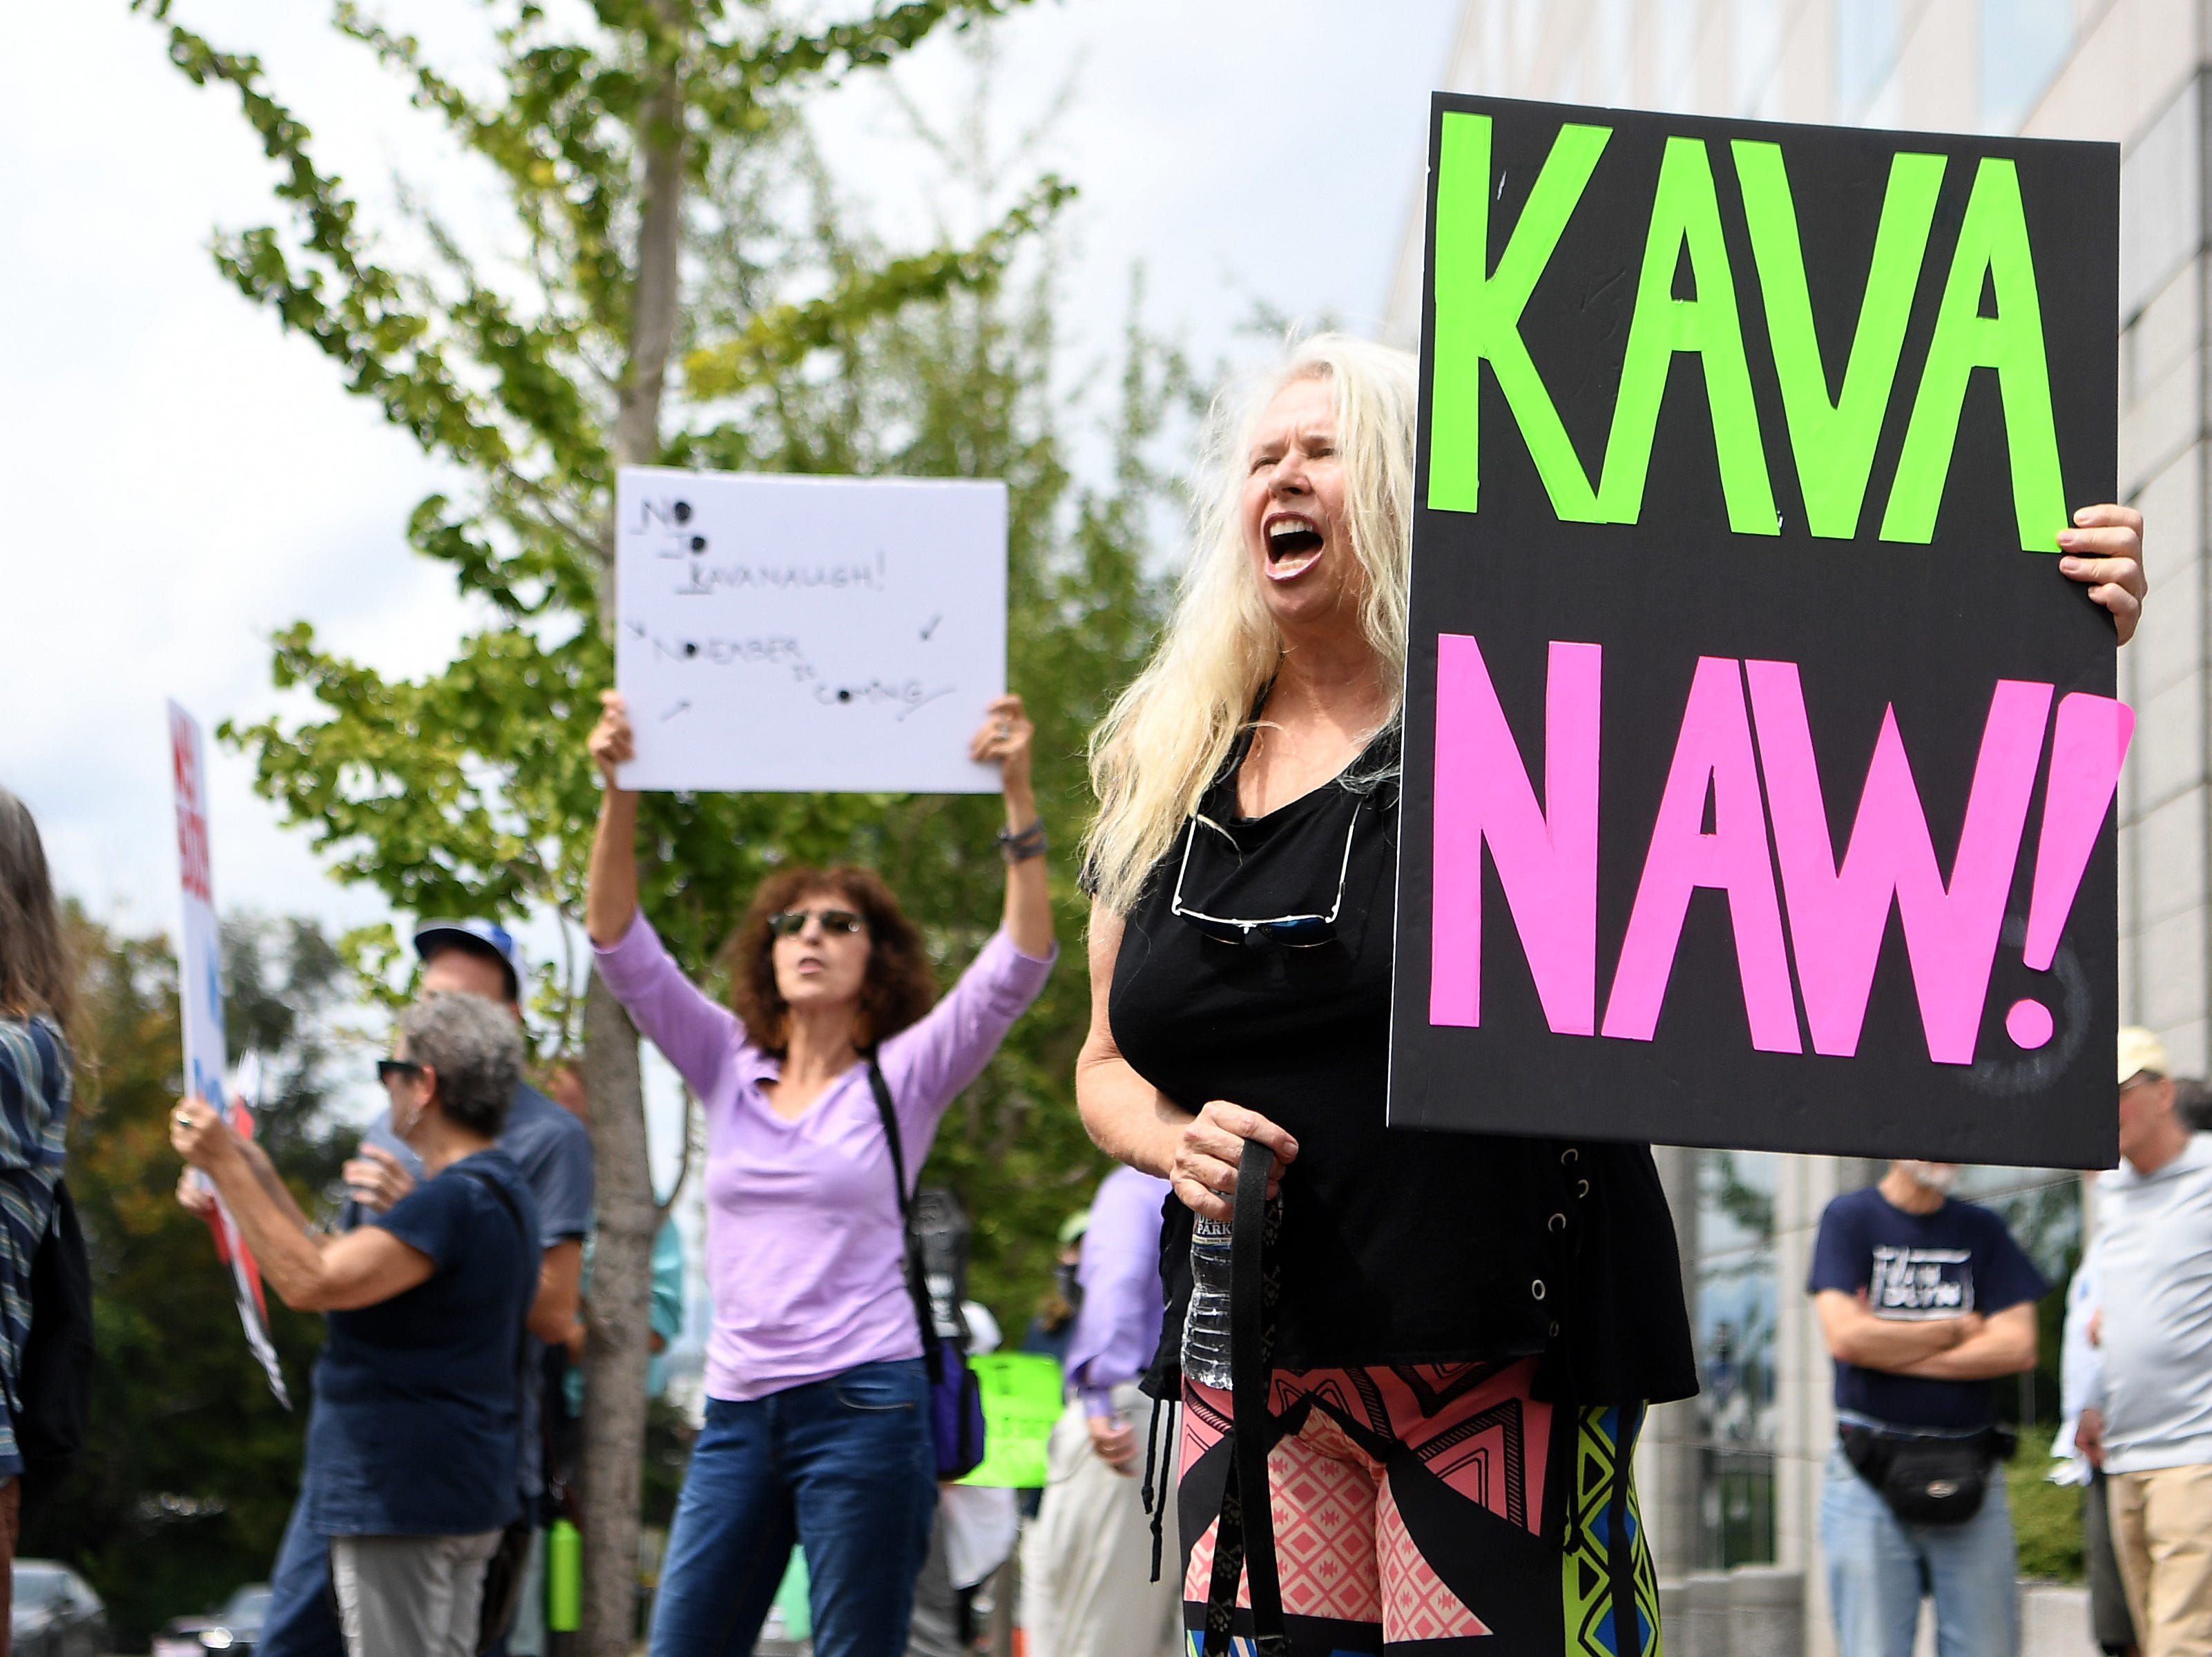 M.J. Taylor holds a homemade sign and chants at passing traffic during a protest against the hearing of Supreme Court nominee Judge Brett Kavanaugh in front of the federal building downtown on Wednesday, Sept. 5, 2018.